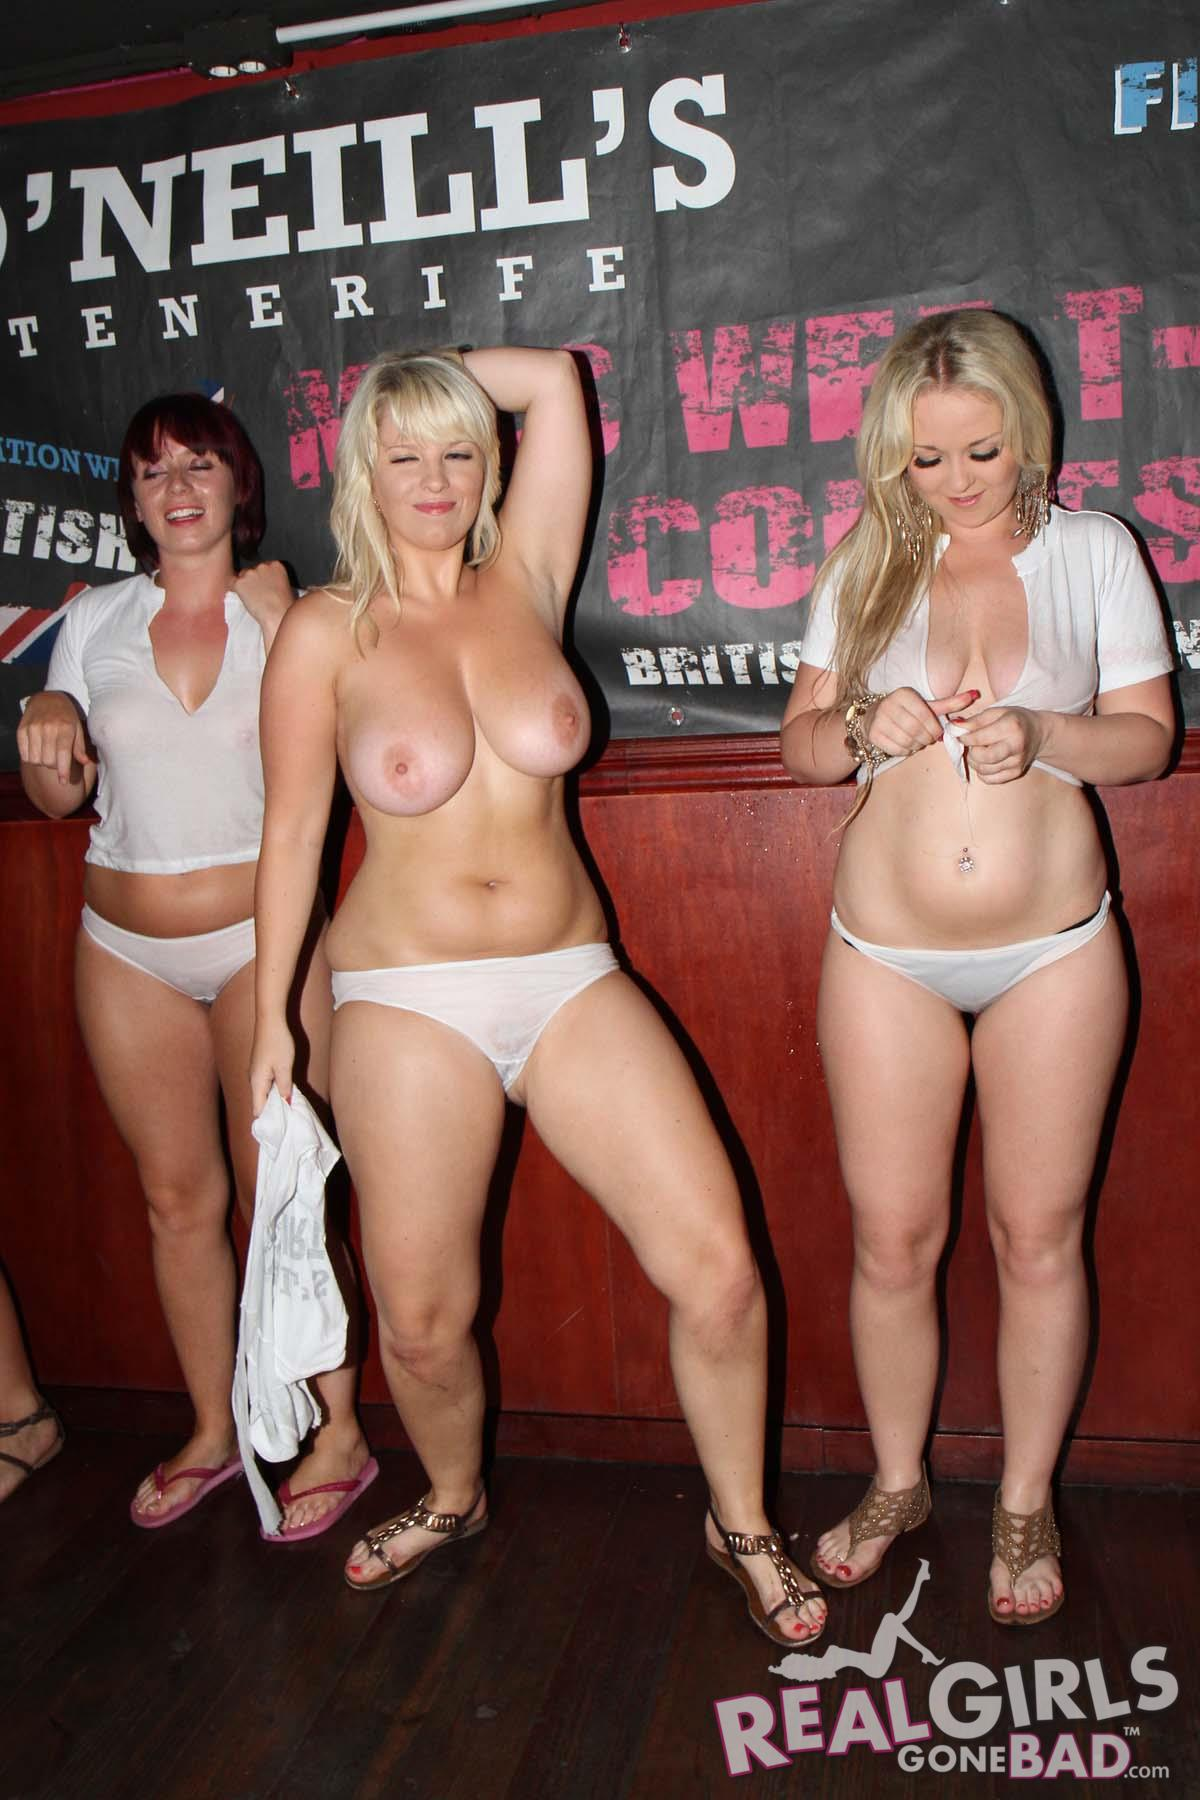 Agree, the girls gone wild party nude happens